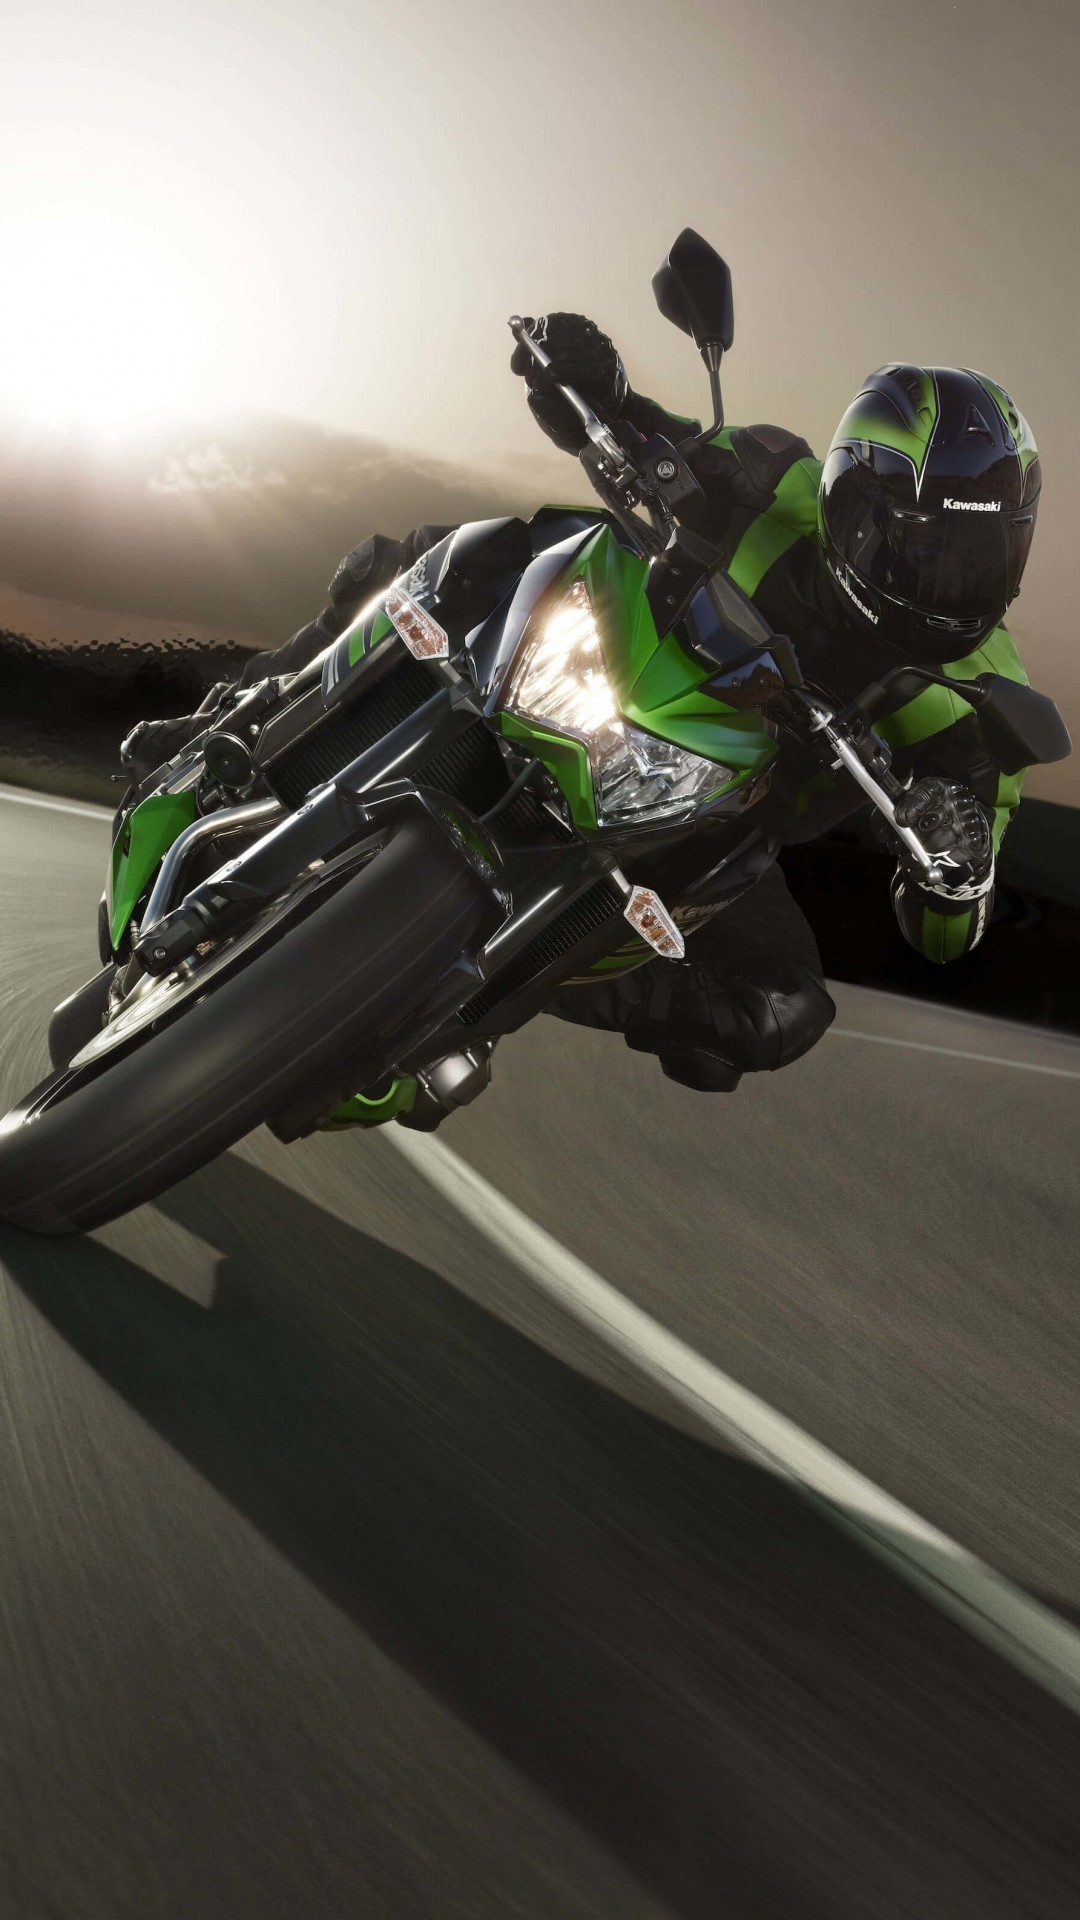 Kawasaki Ninja ZX-10R Wallpaper for SONY Xperia Z1